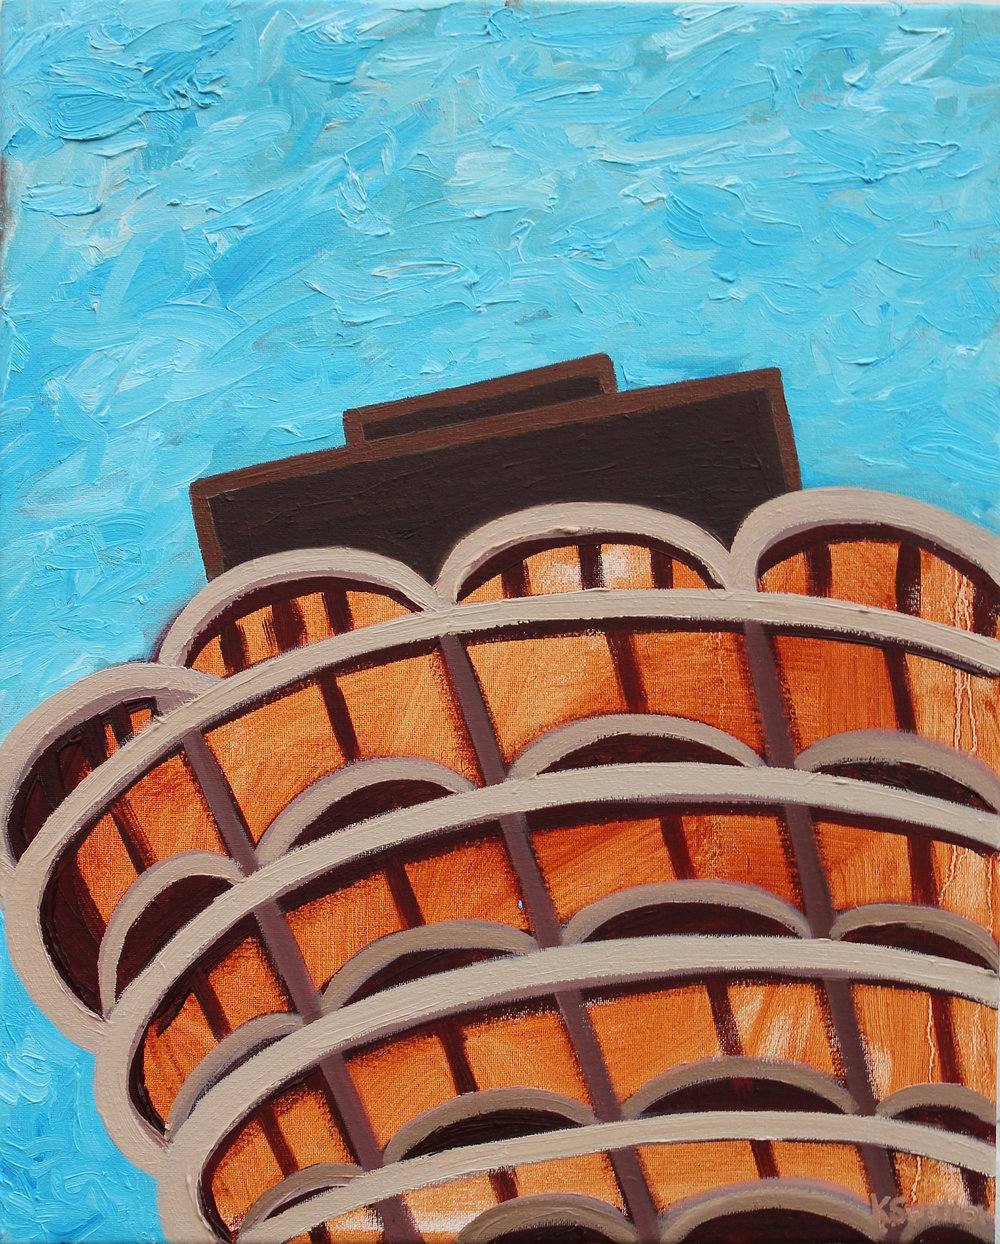 Marina Towers #4, oil on canvas, 20x16, 2017, AVAILABLE.jpg